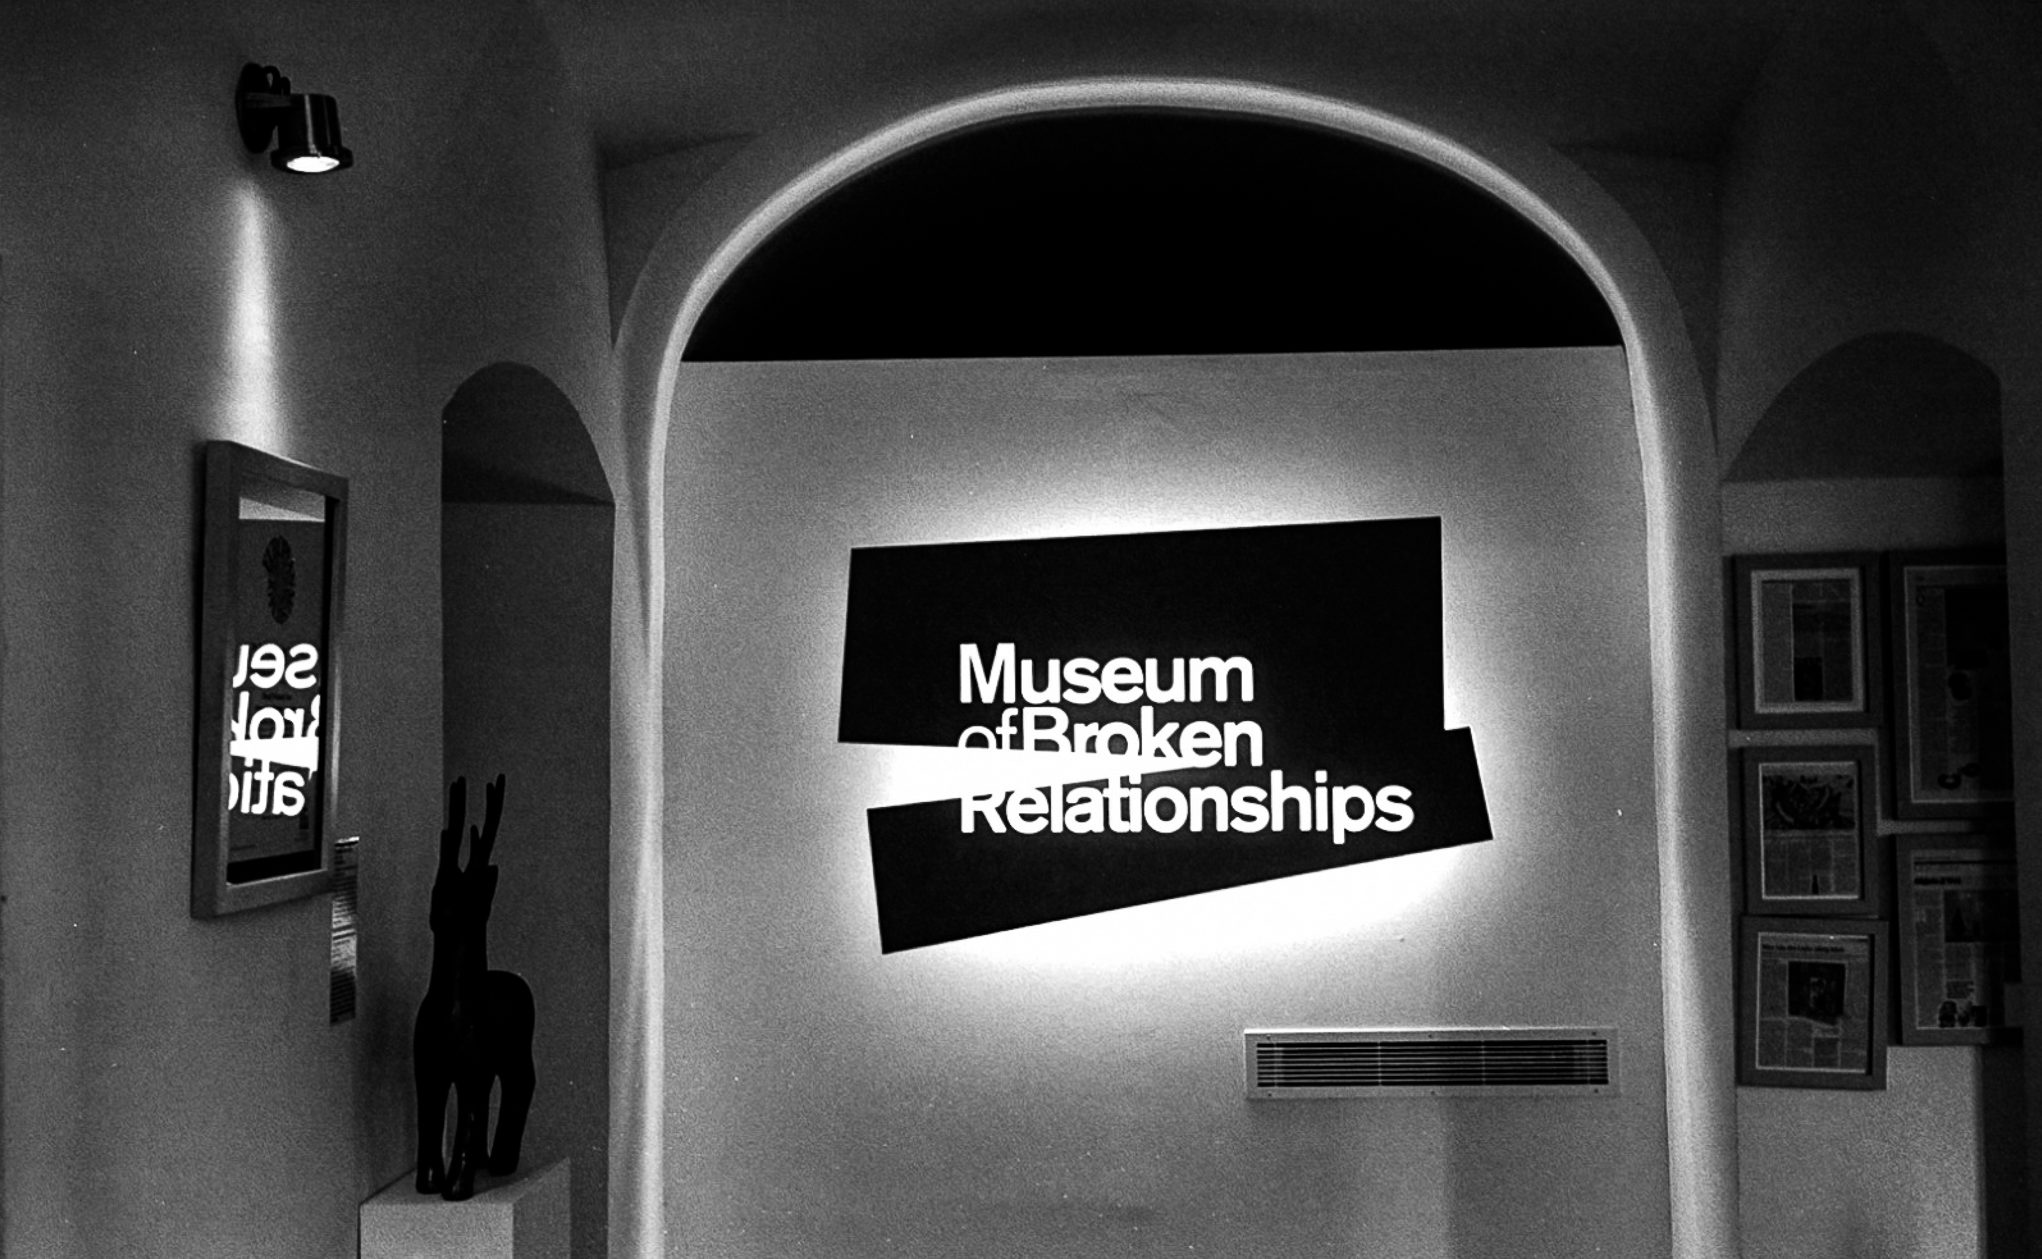 Broken relationships museum Zagreb